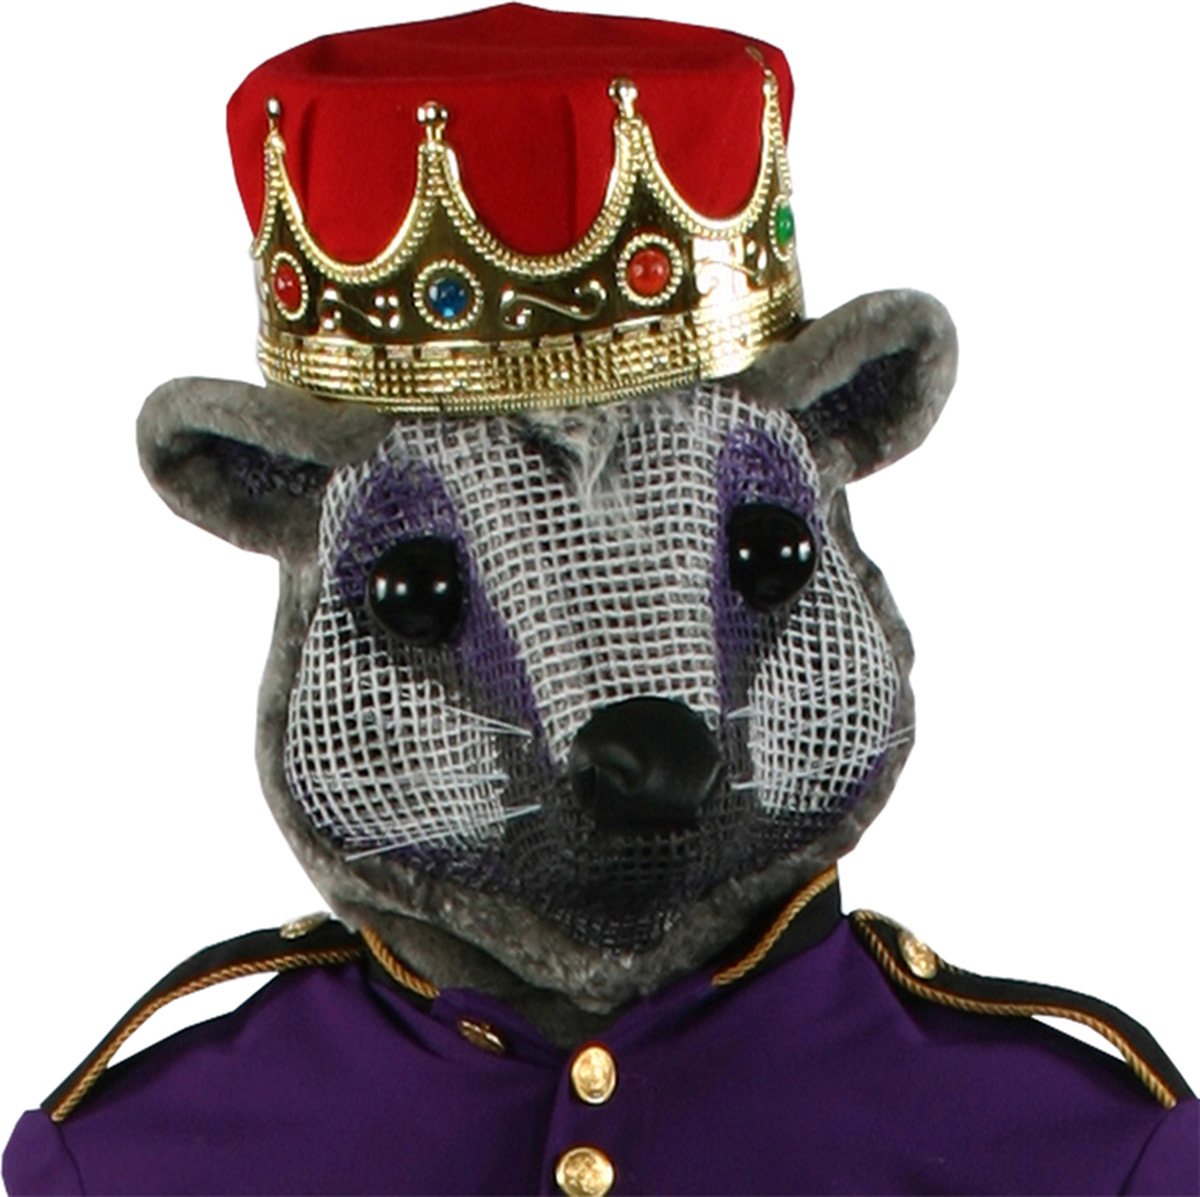 Morris costumes AD92RD Mouse King Head W Red Crown